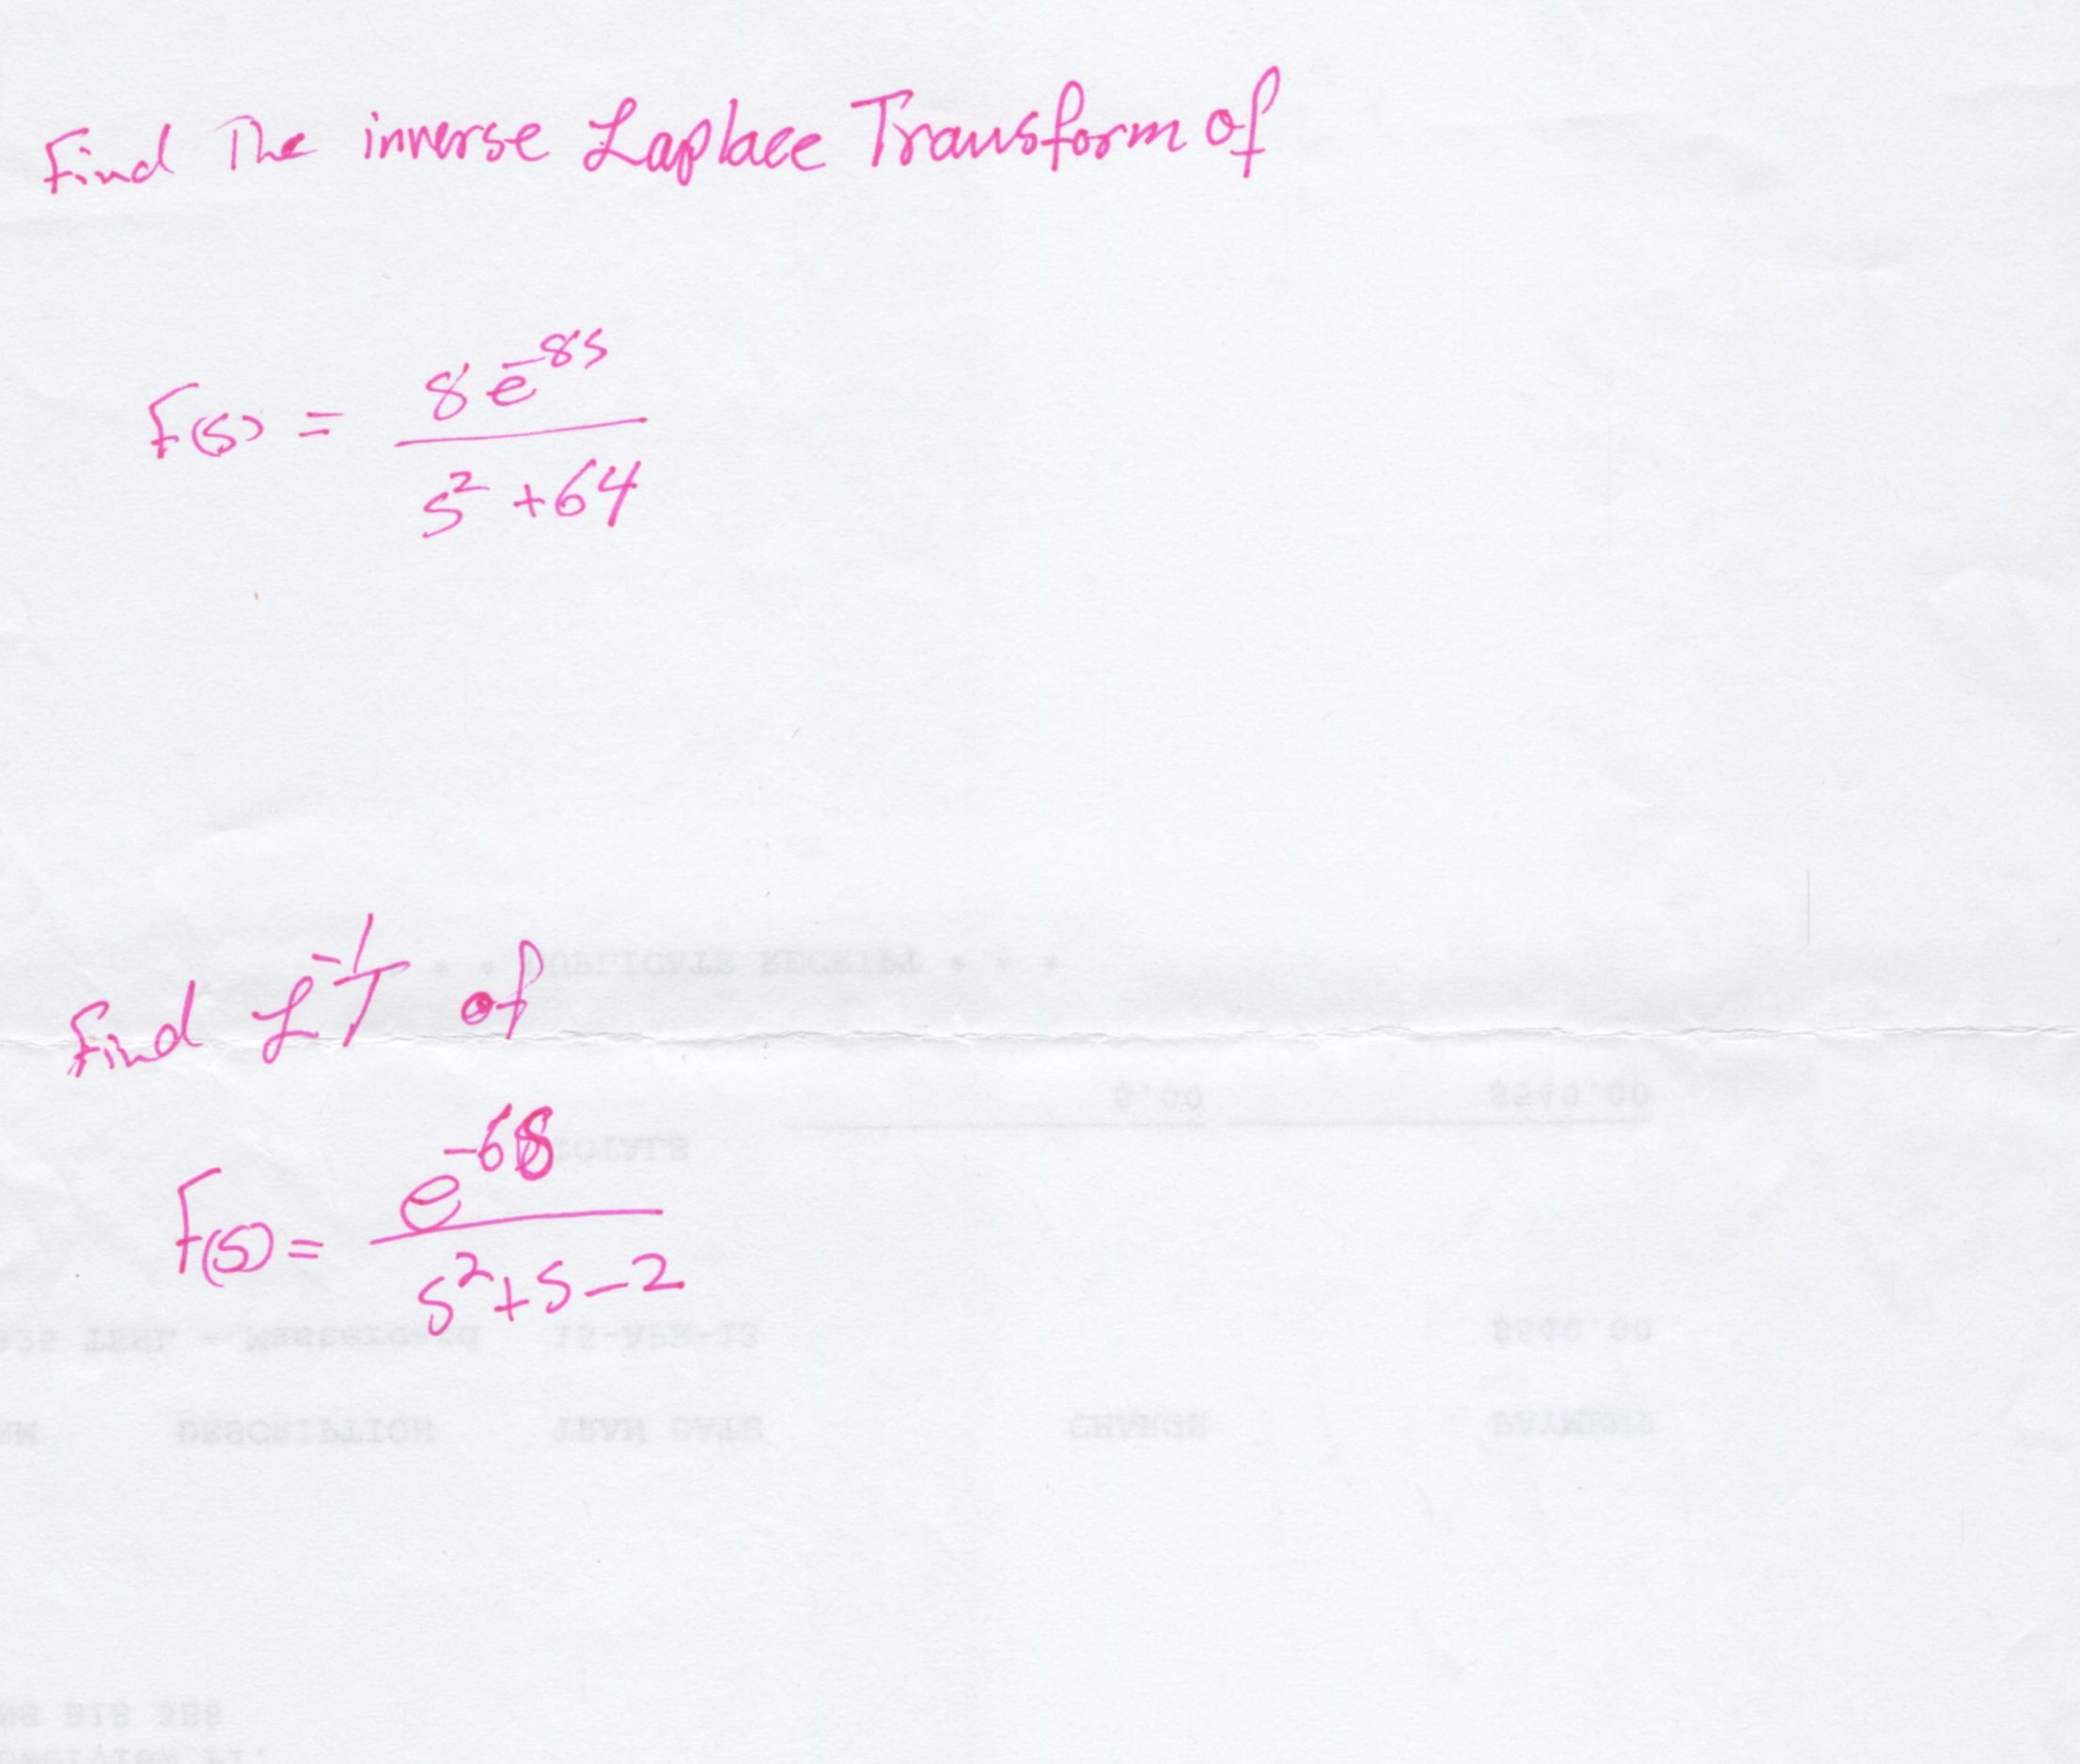 how to solve inverse laplace transform